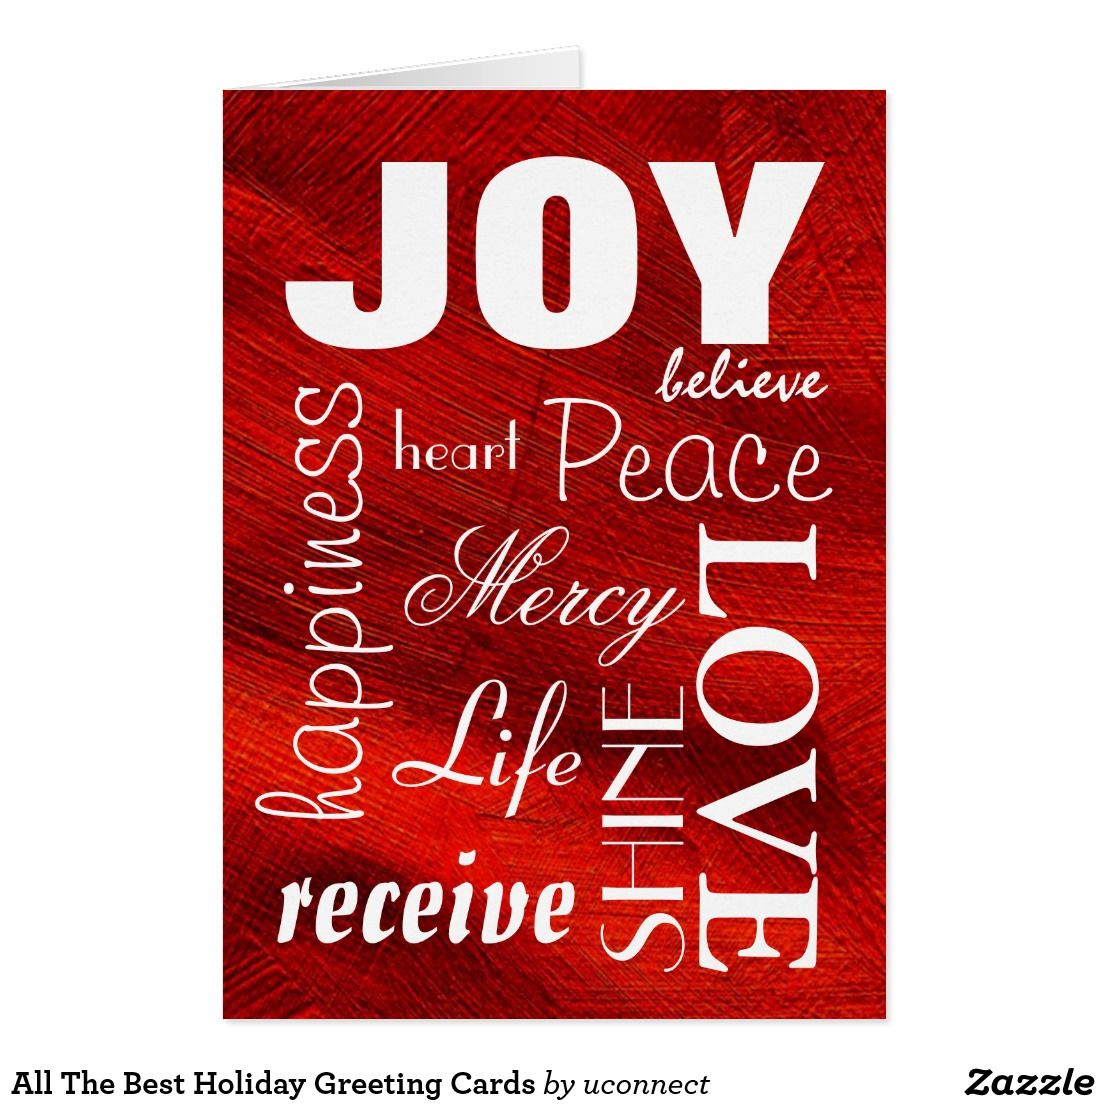 All The Best Holiday Greeting Cards Holiday Greeting Cards